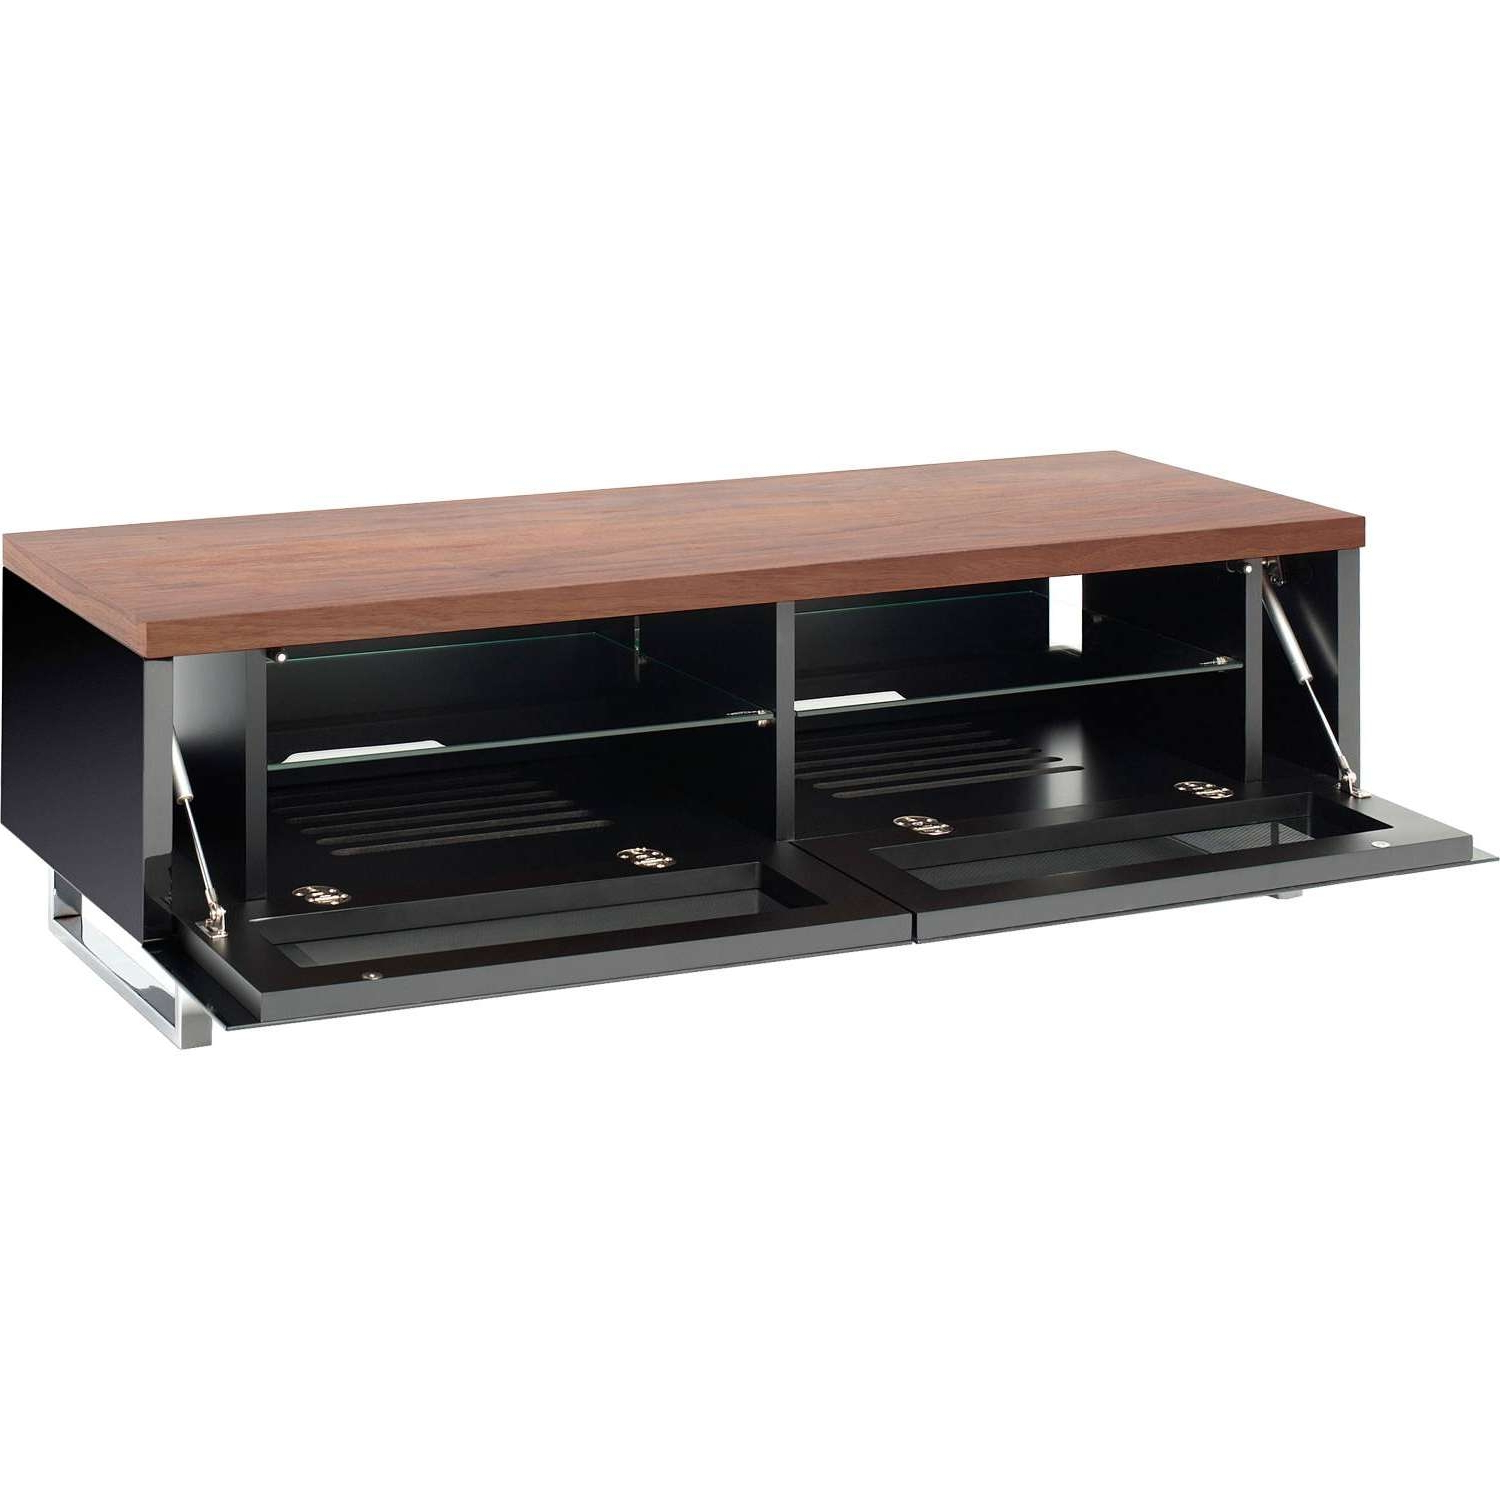 Panorama Tv Stands For Current Techlink Panorama Walnut Tv Stands (View 12 of 20)